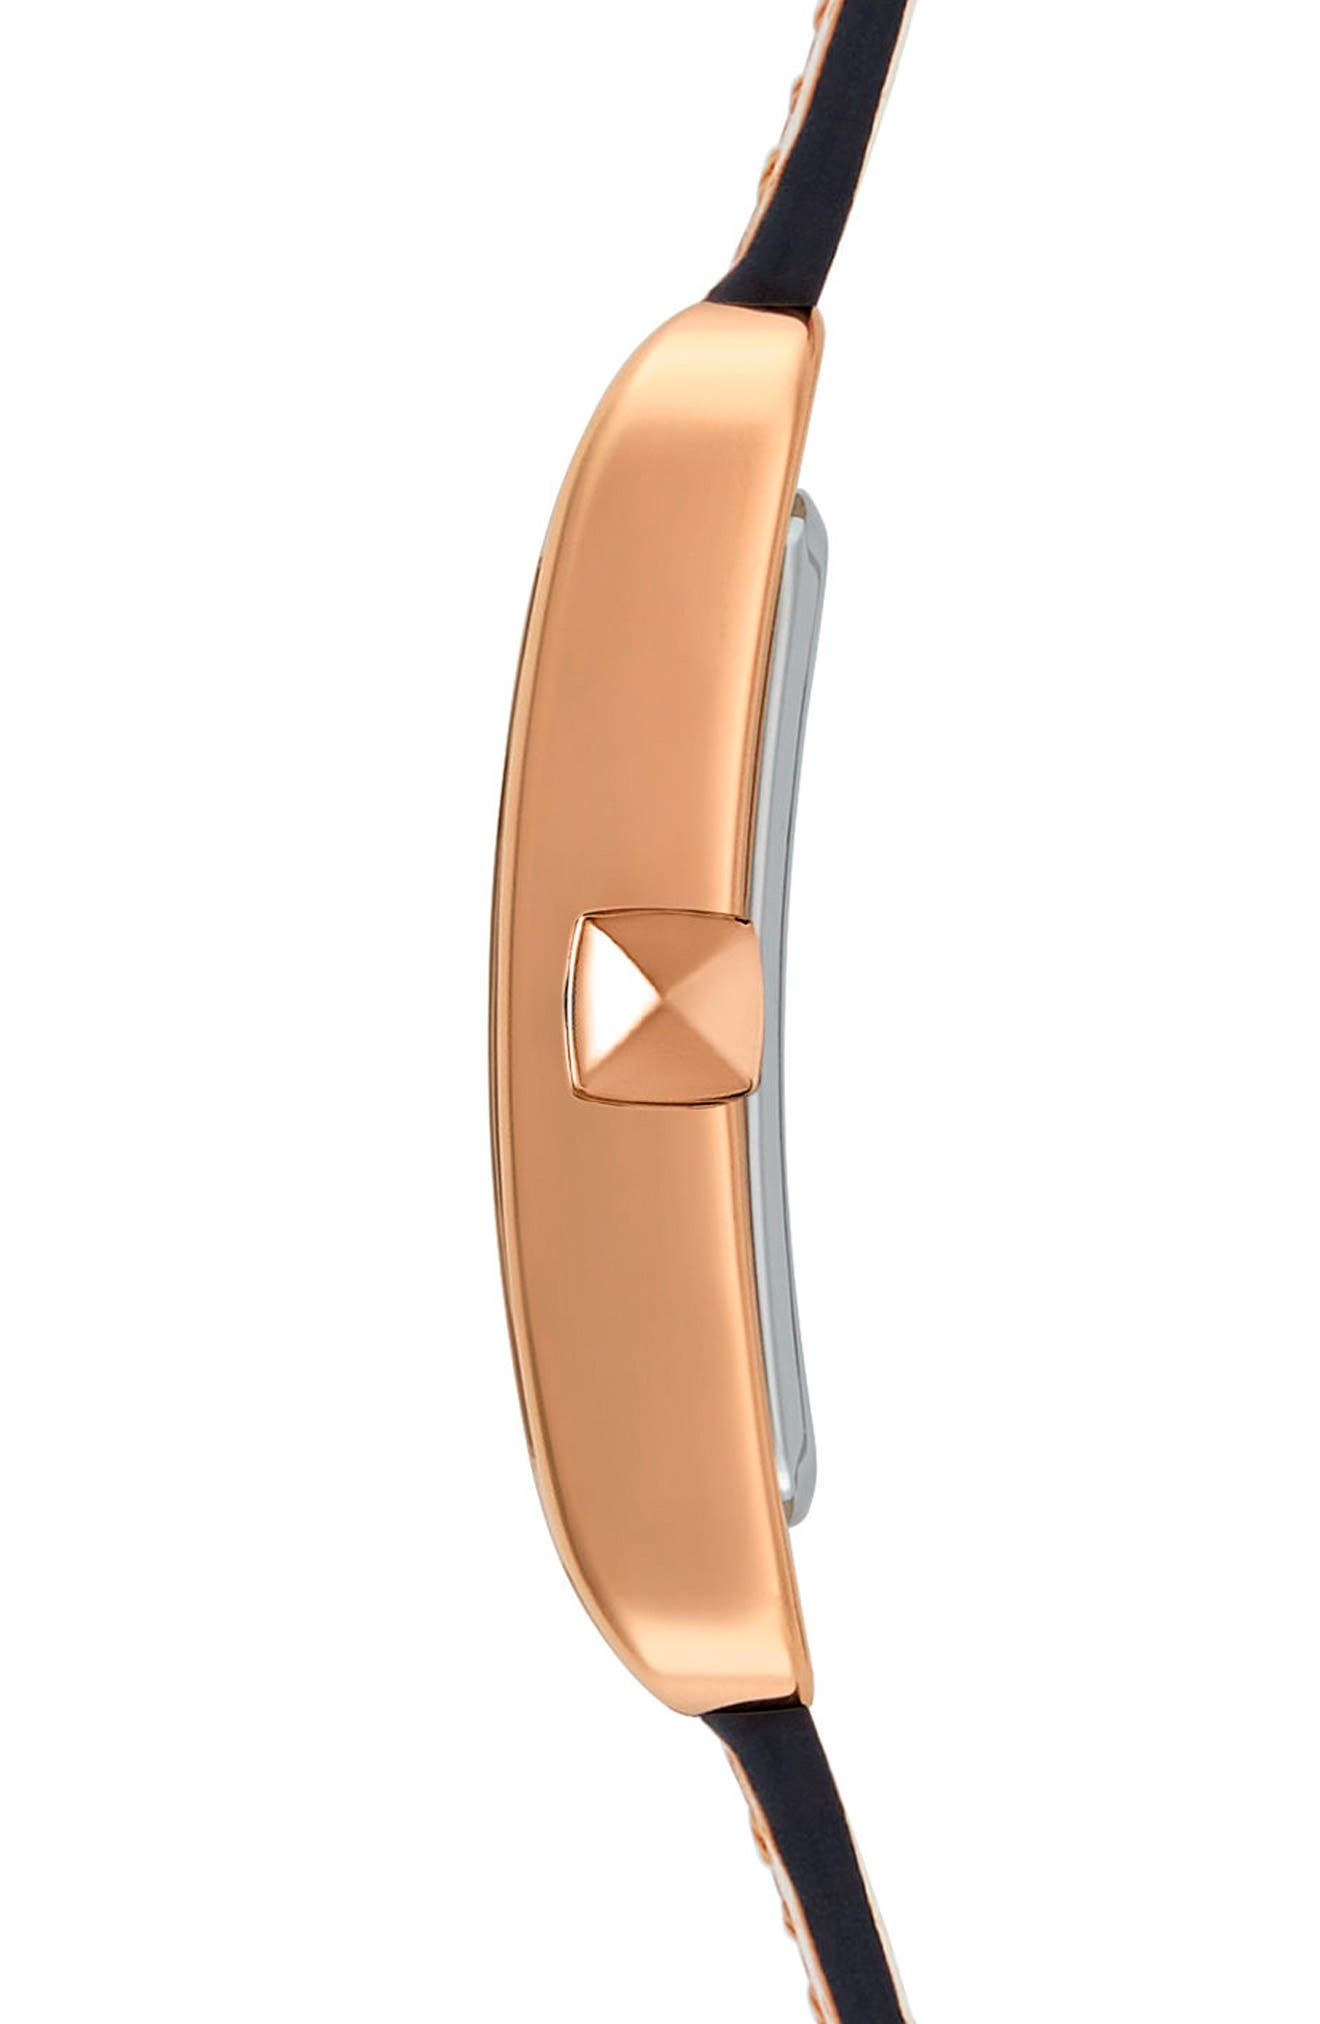 Moment Leather Strap Watch, 27mm x 39mm,                             Alternate thumbnail 3, color,                             Blush/ White/ Rose Gold